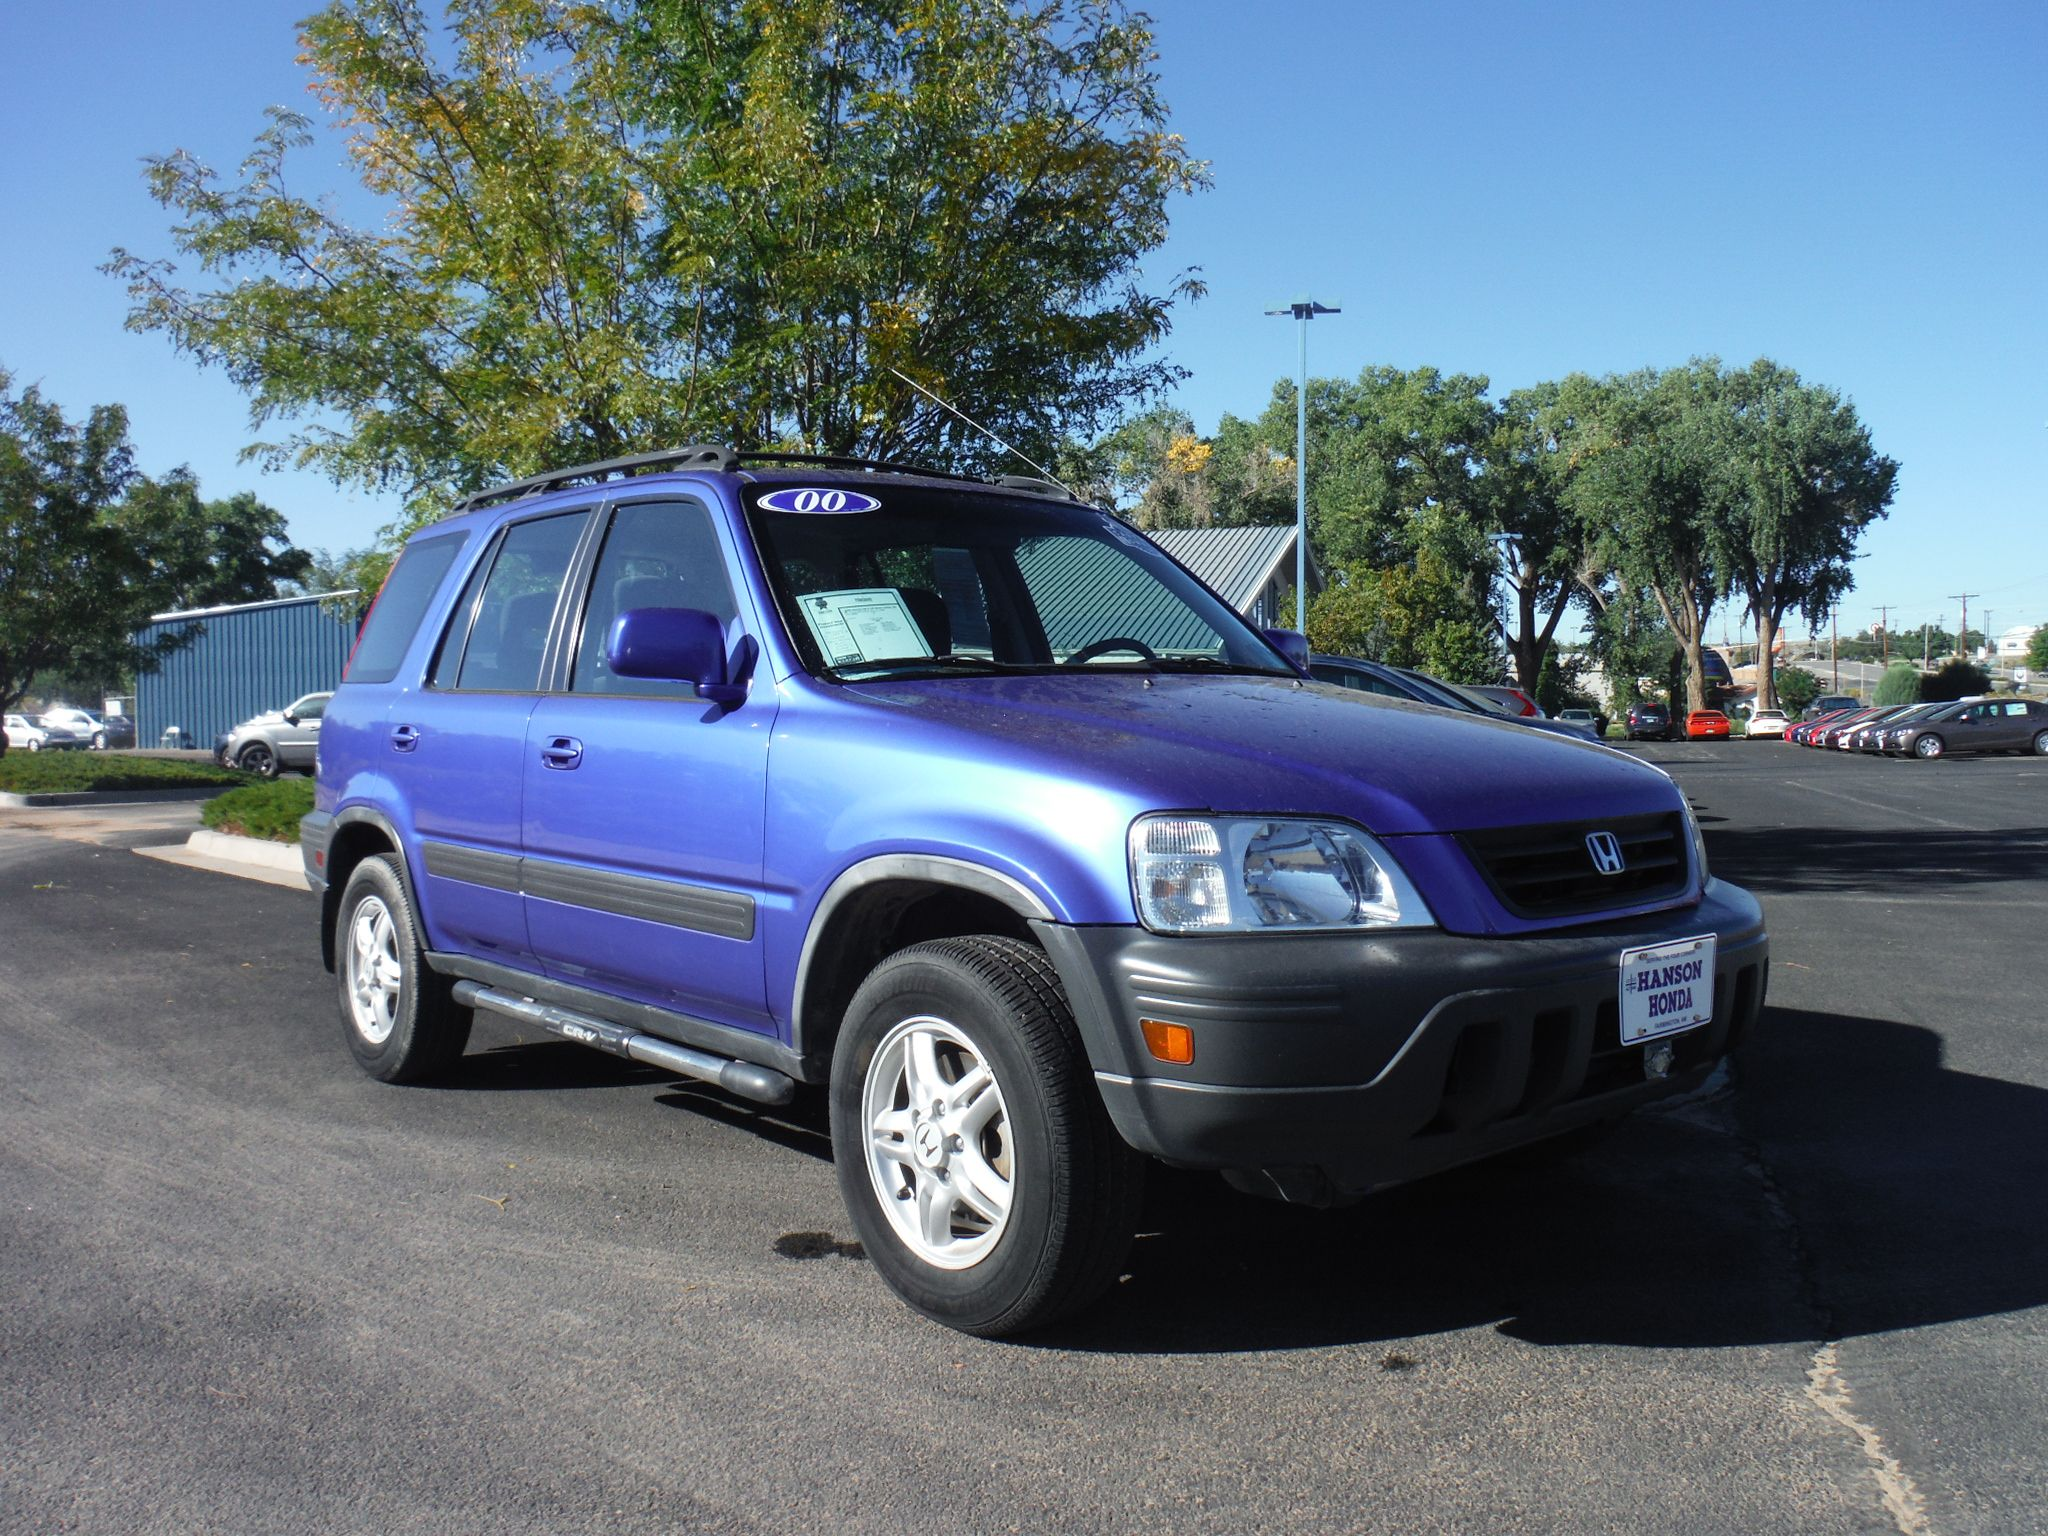 2000 Honda Cr V Ready For You To Come Drive It Home Today